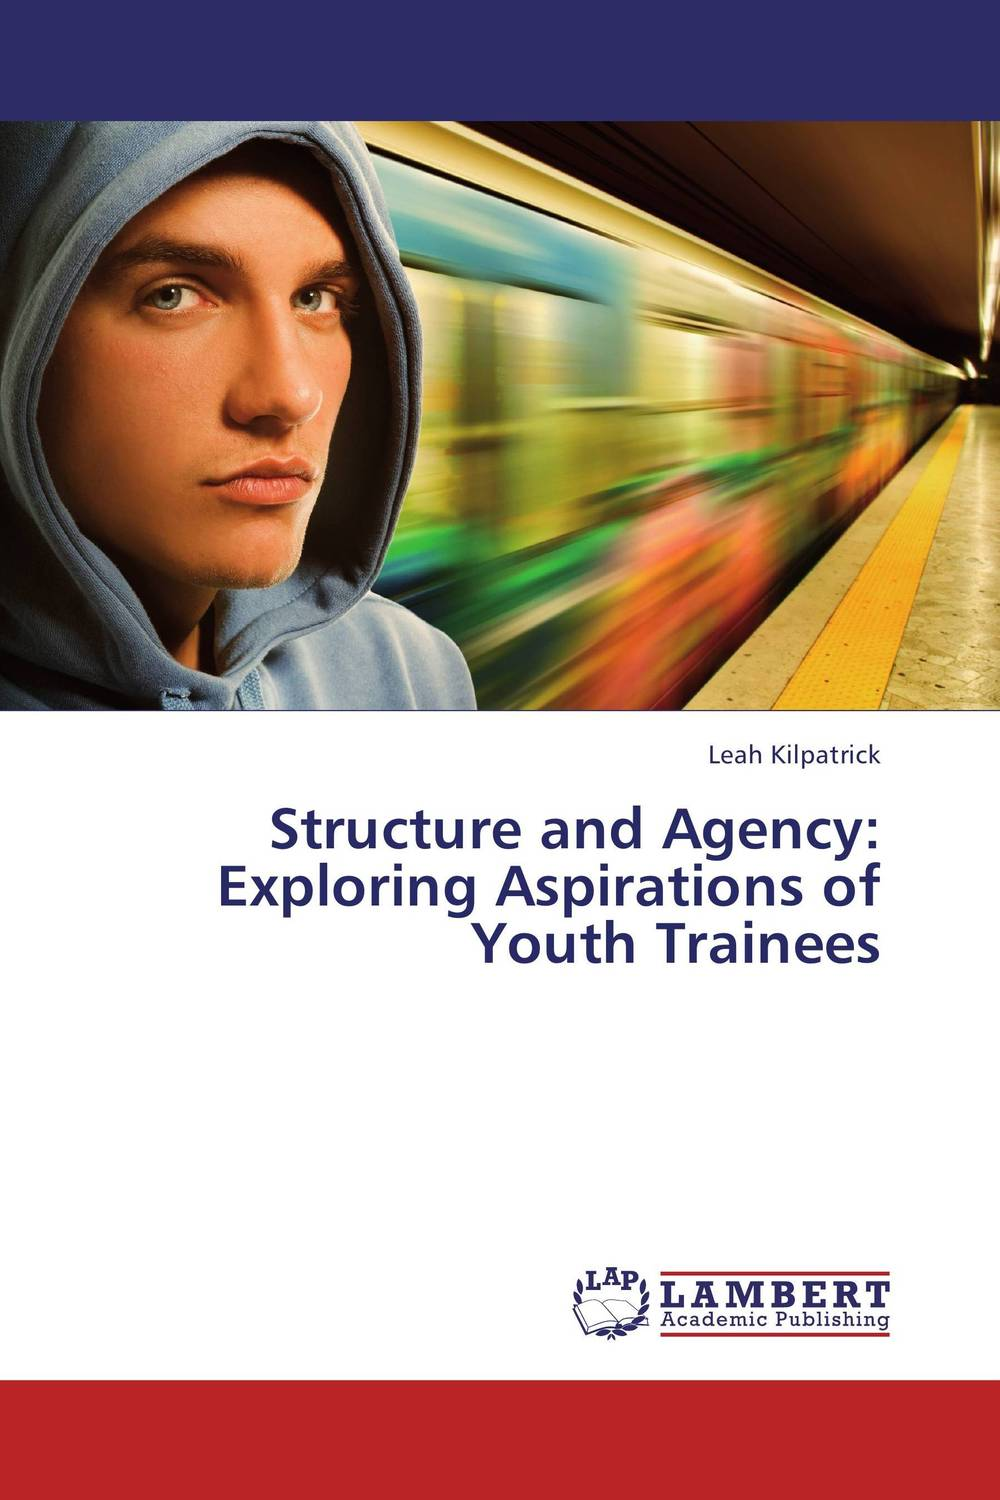 Structure and Agency: Exploring Aspirations of Youth Trainees